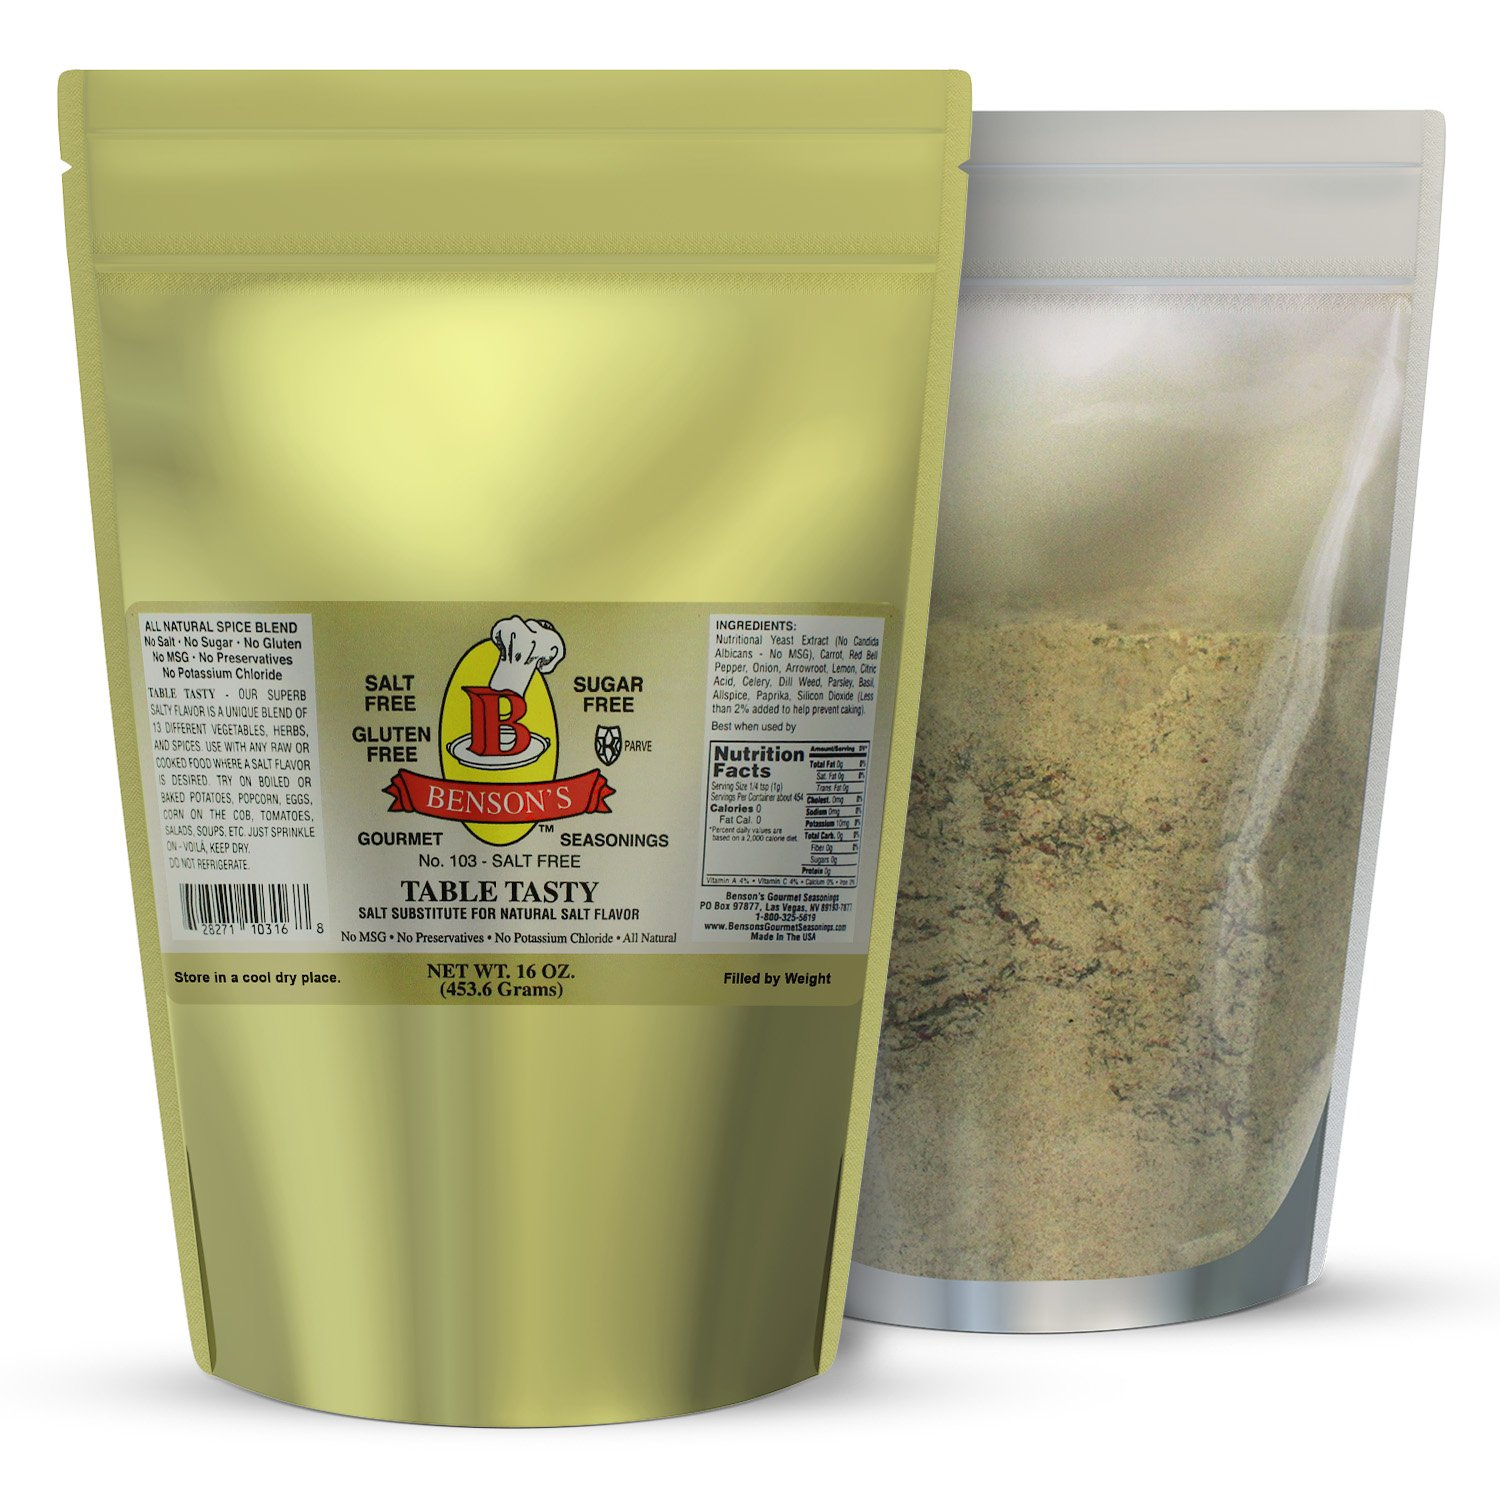 1 pound Table Tasty No Potassium Chloride Salt Substitute - No Bitter After Taste - Good Flavor - No Sodium Salt Alternative - 1 Lb Resealable Bag - More Economical by Benson's Gourmet Seasonings (Image #1)